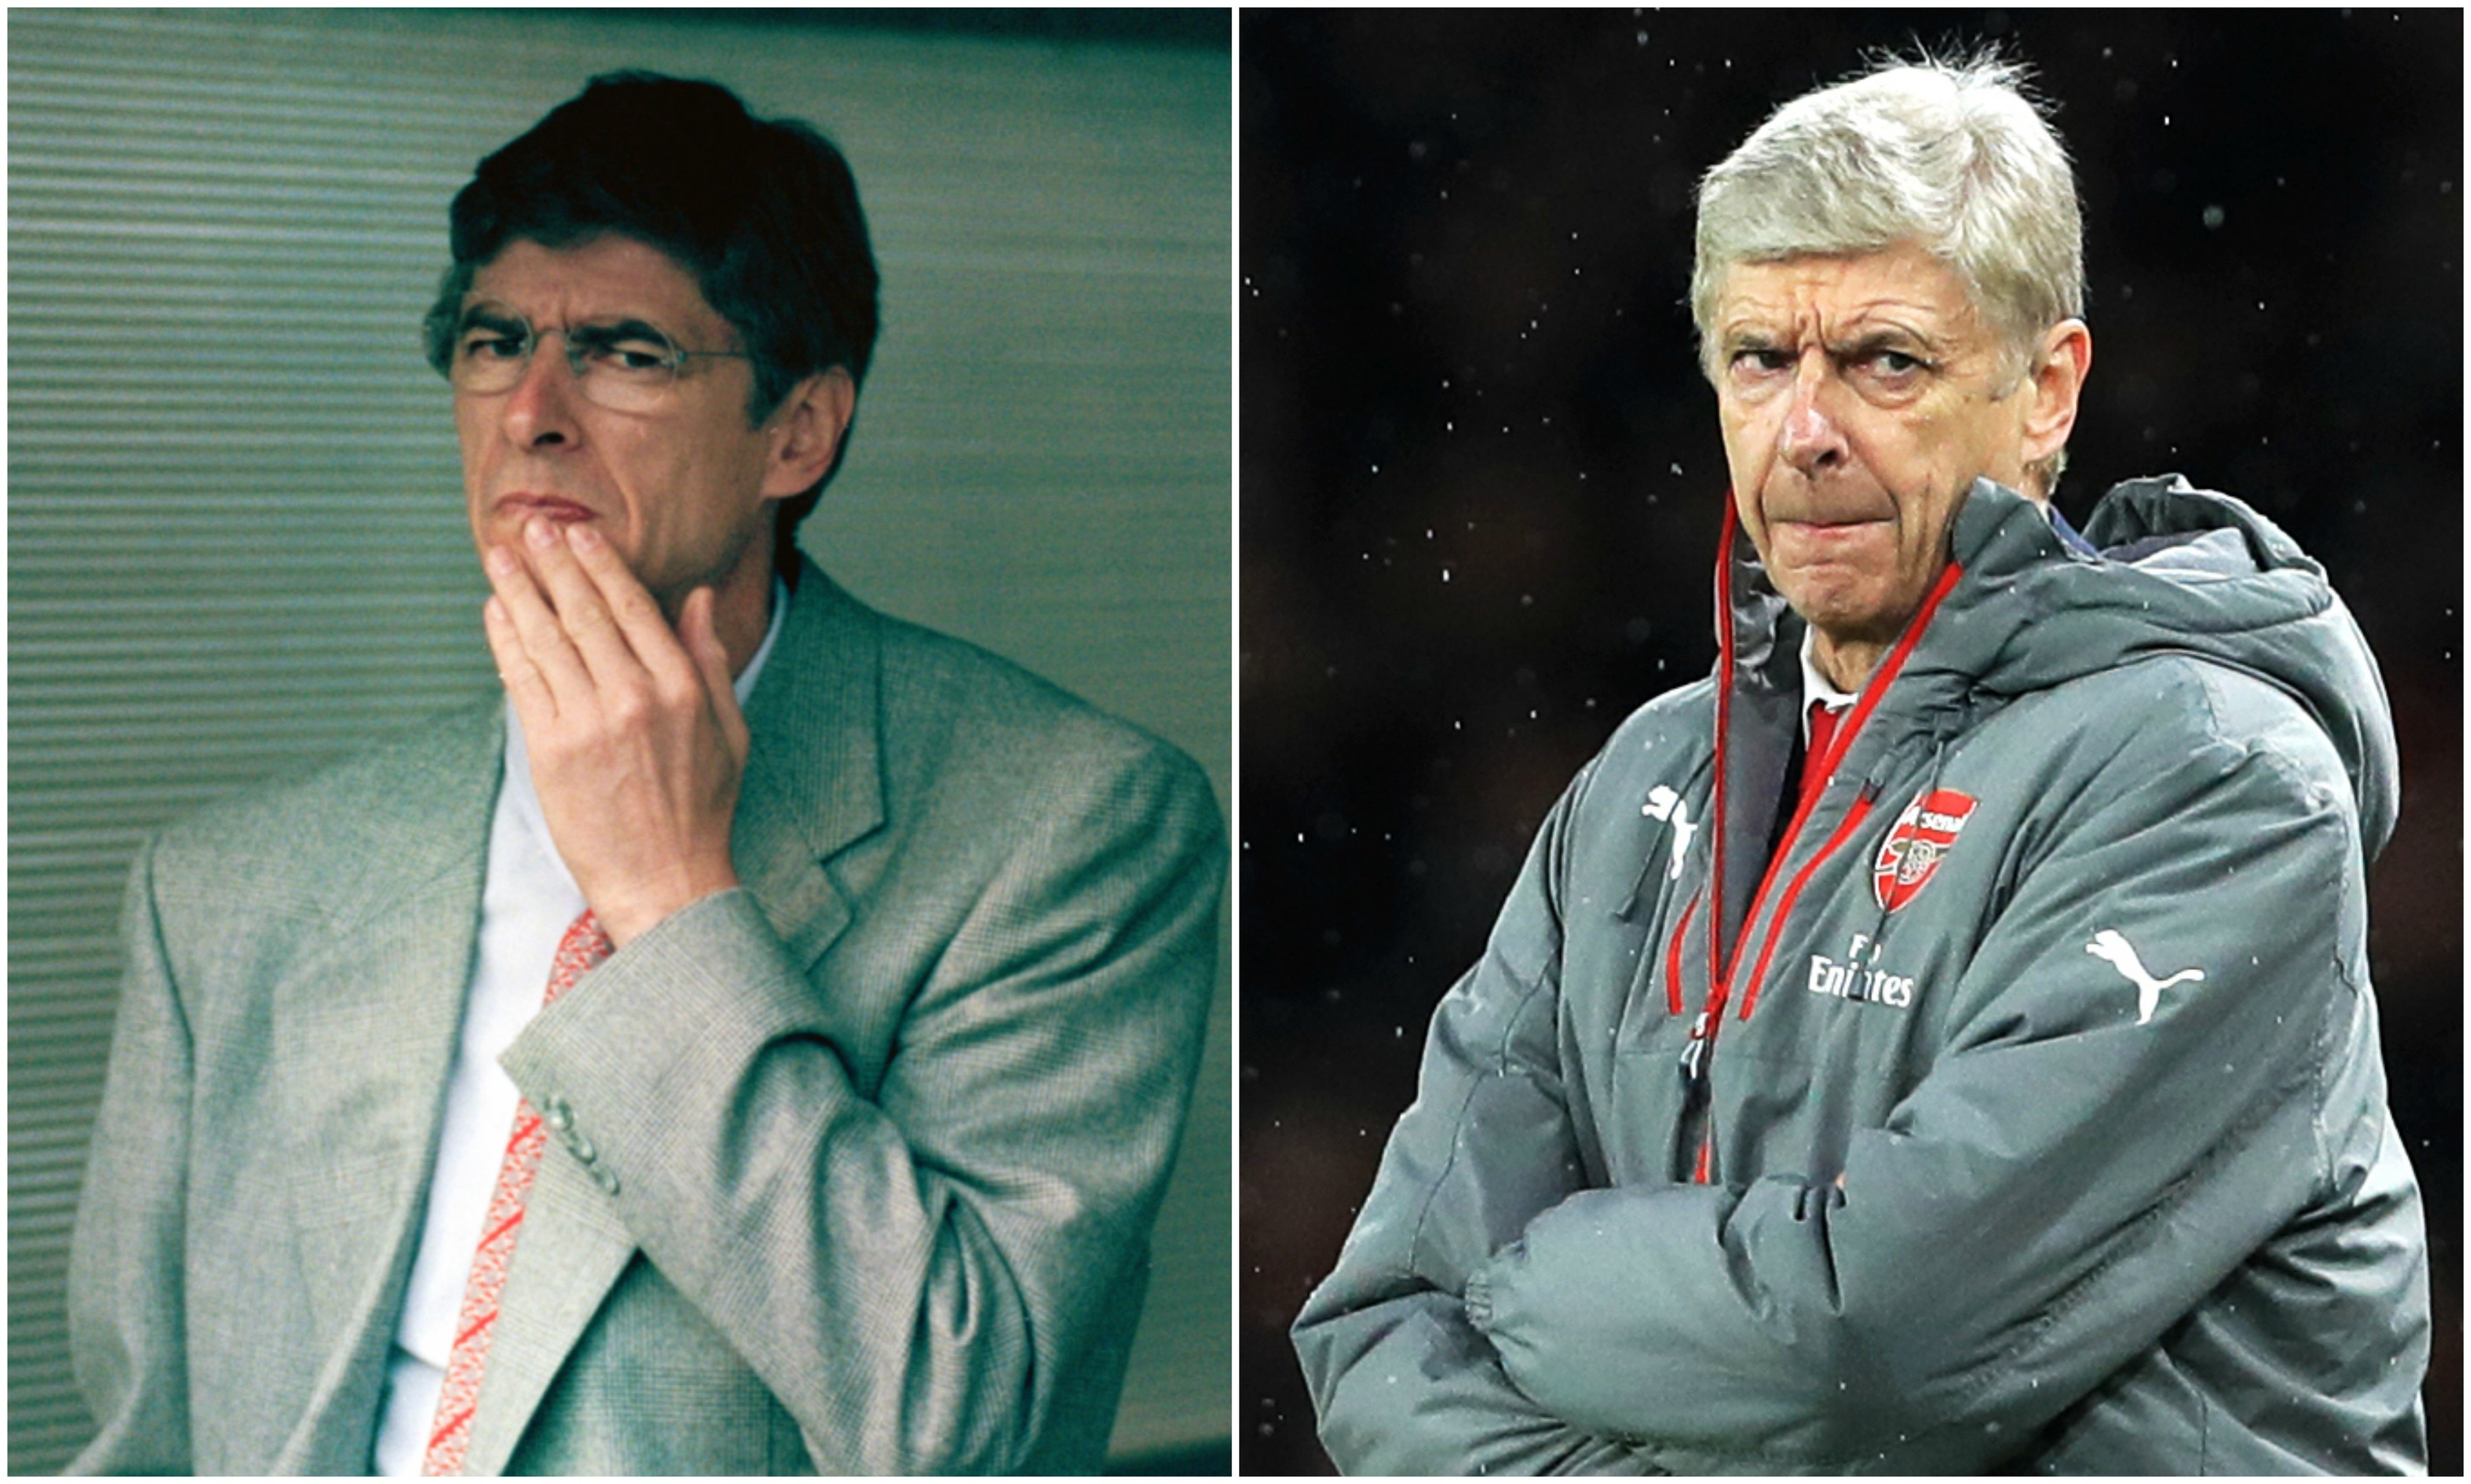 Wenger pictured in 1996 (left) and 2018